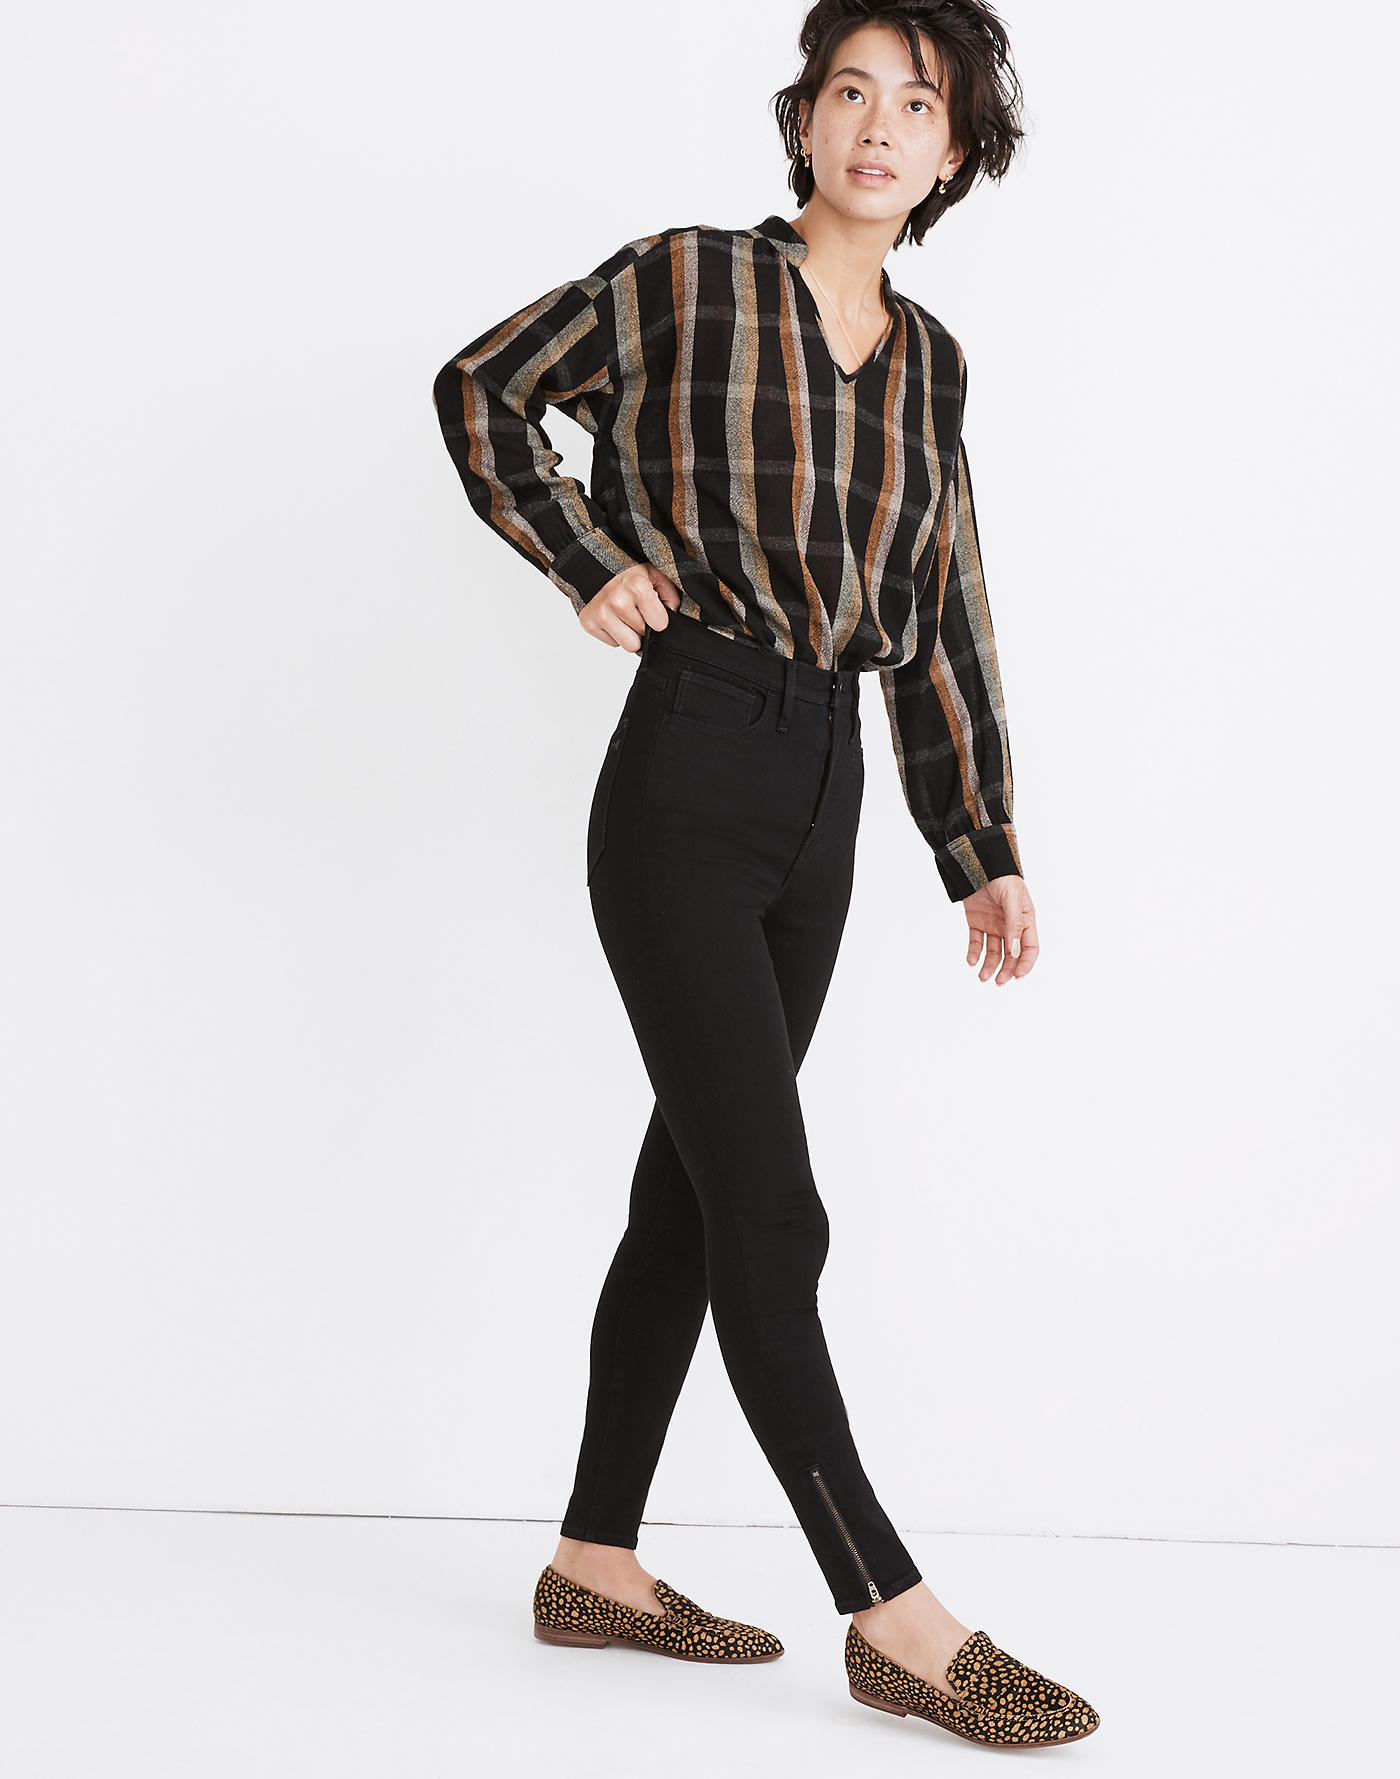 Madewell 11 High-Rise Roadtripper Jeans: Ankle-Zip Edition